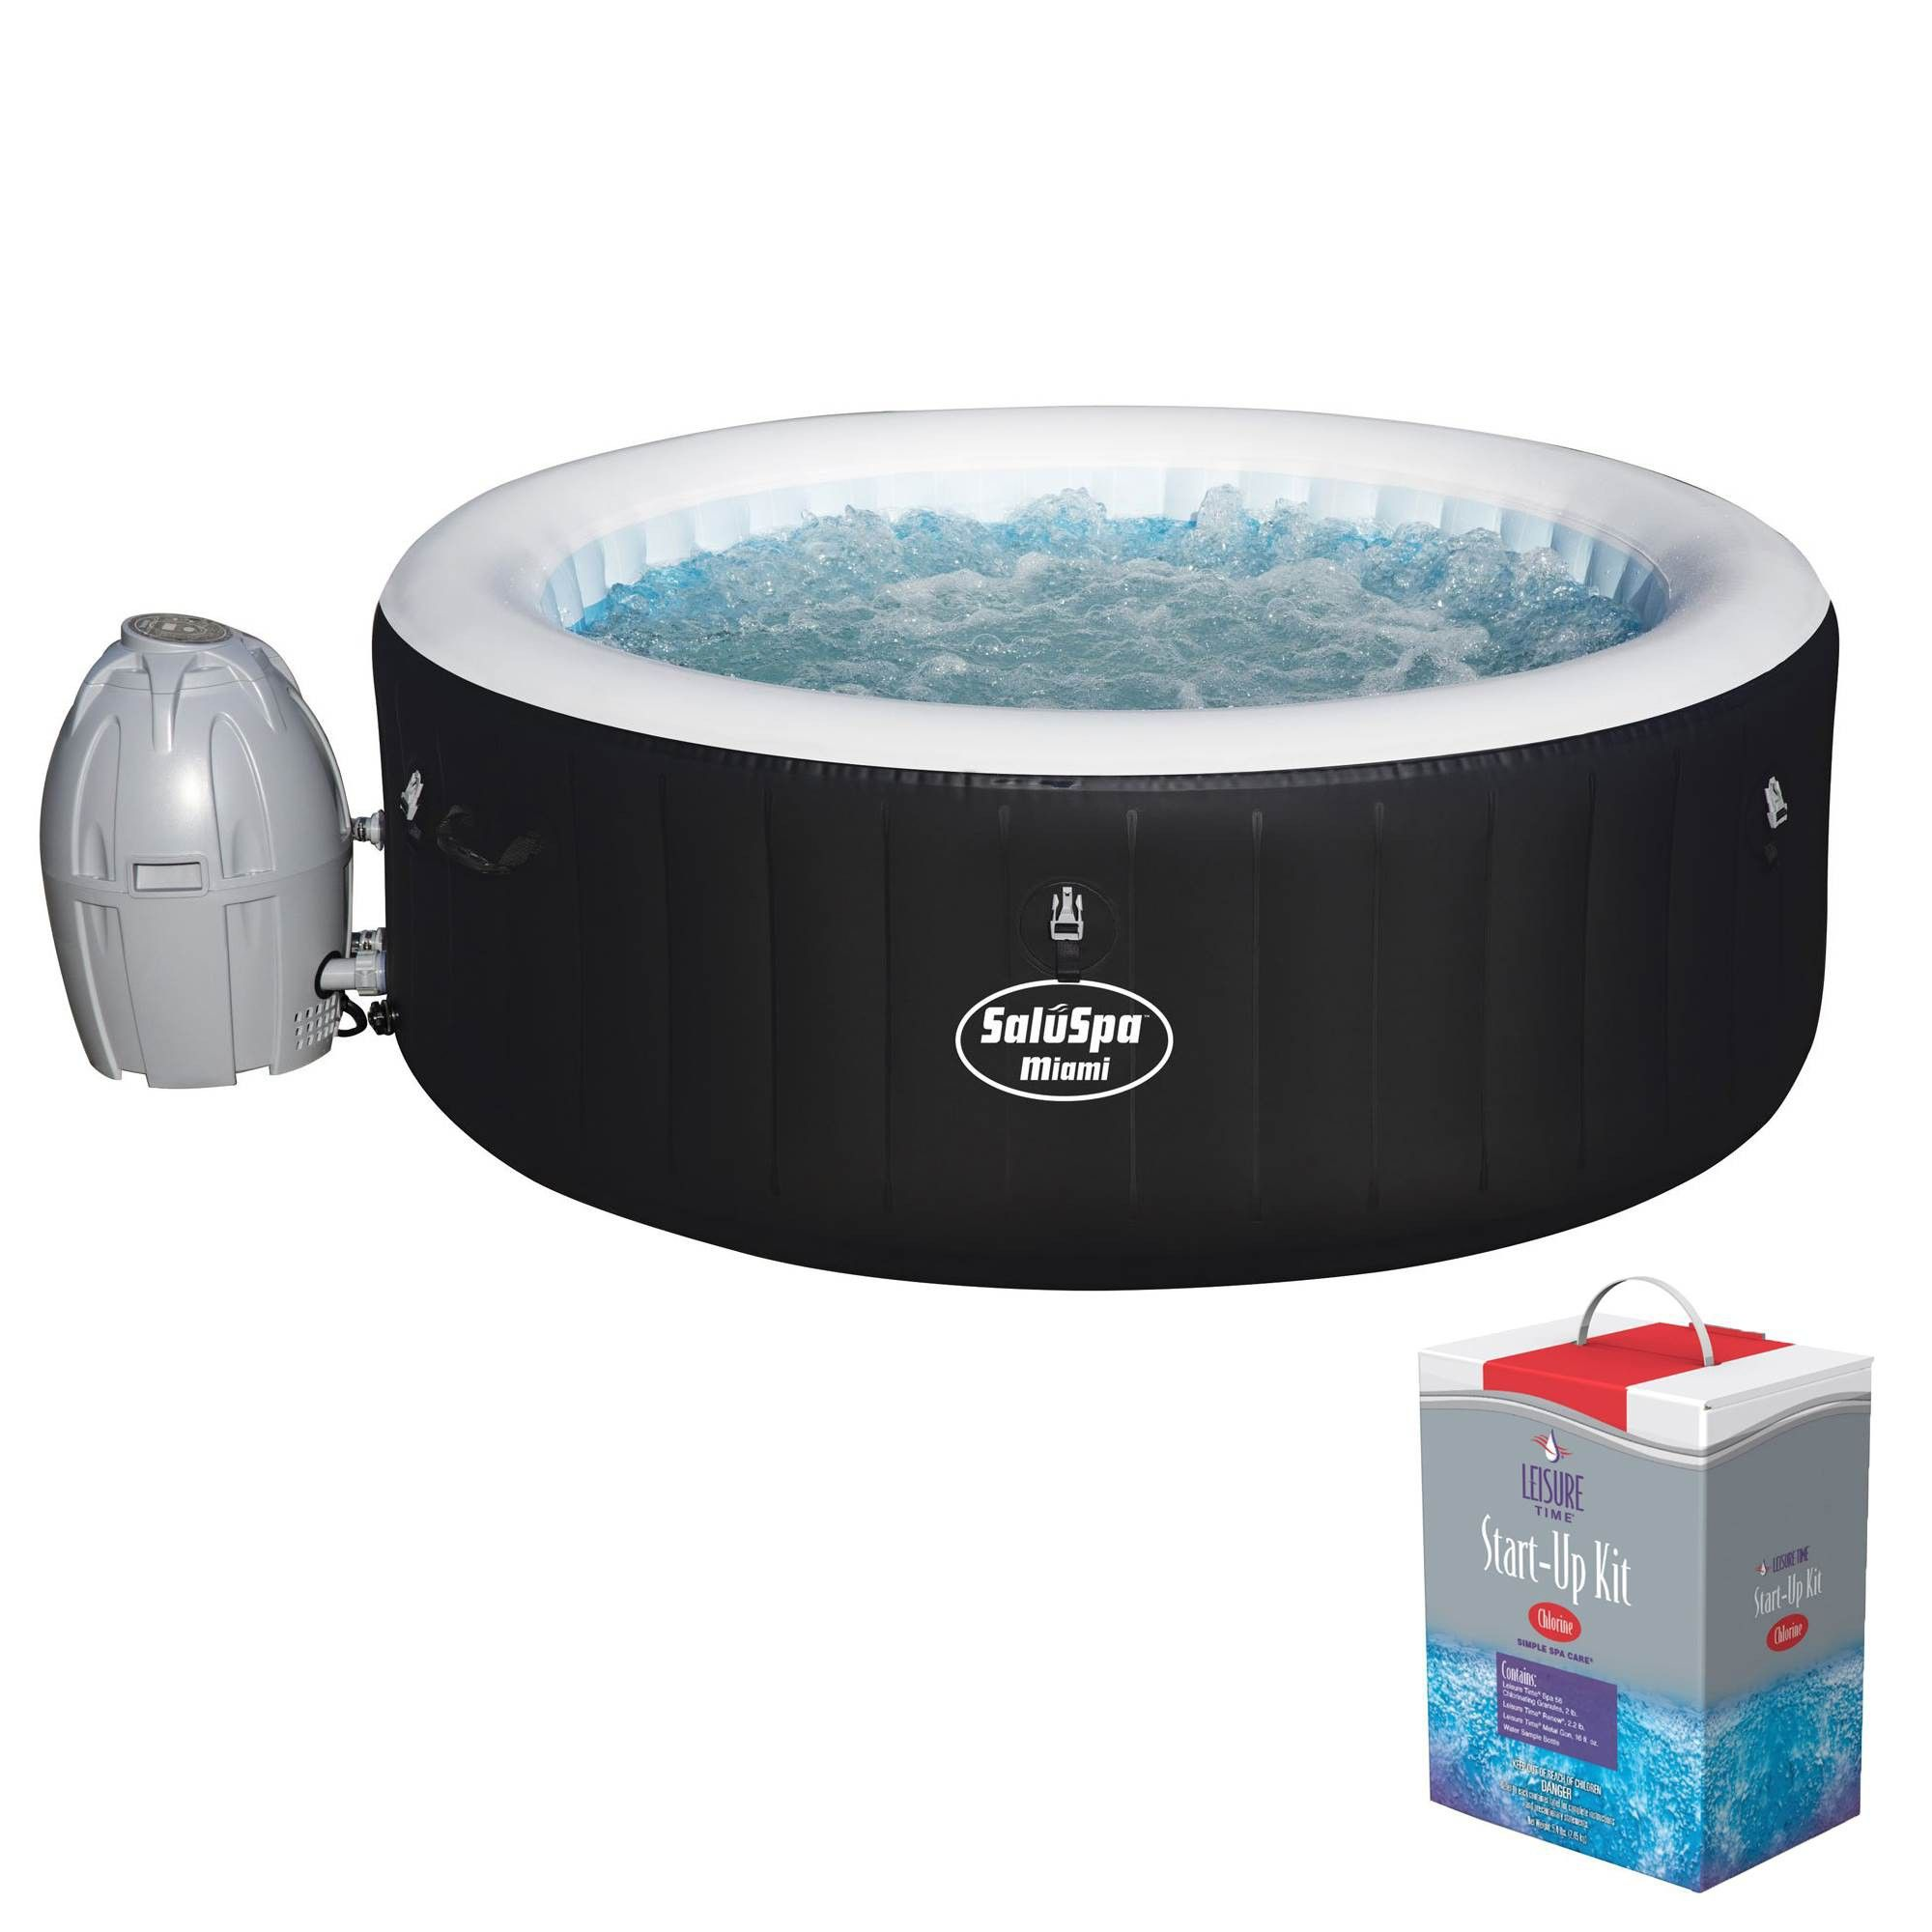 Bestway Saluspa Inflatable Hot Tub Spa Jacuzzi With Full Chlorine